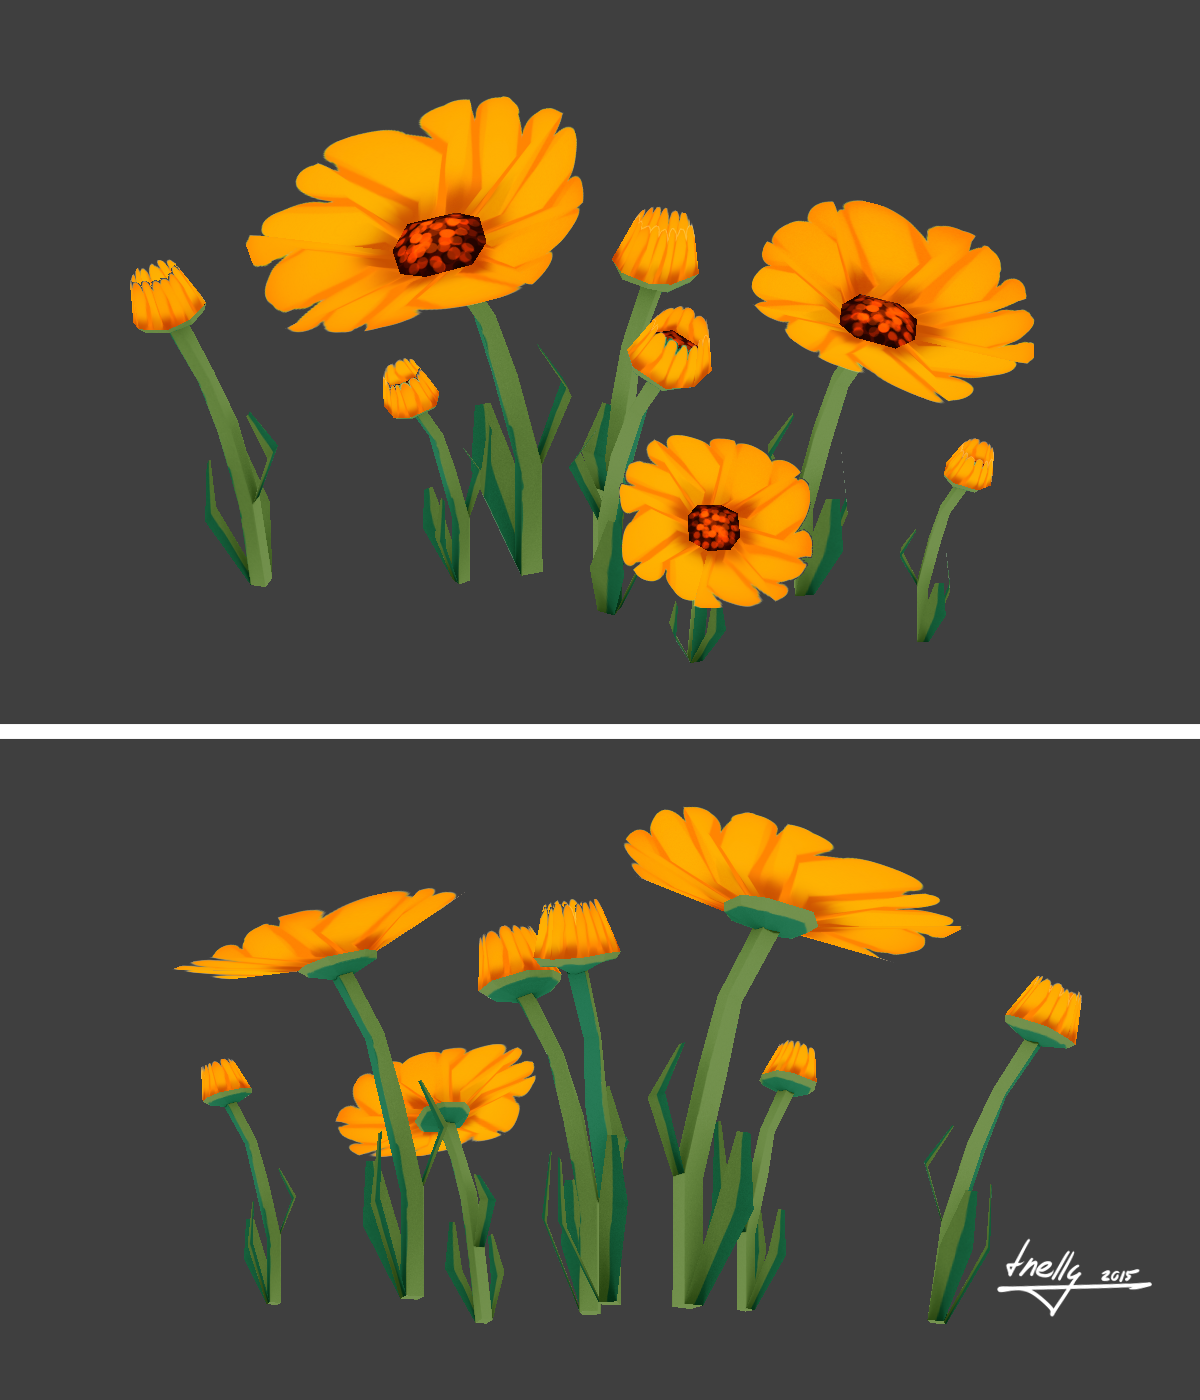 Marigolds - 1 by Tizedes Petronella